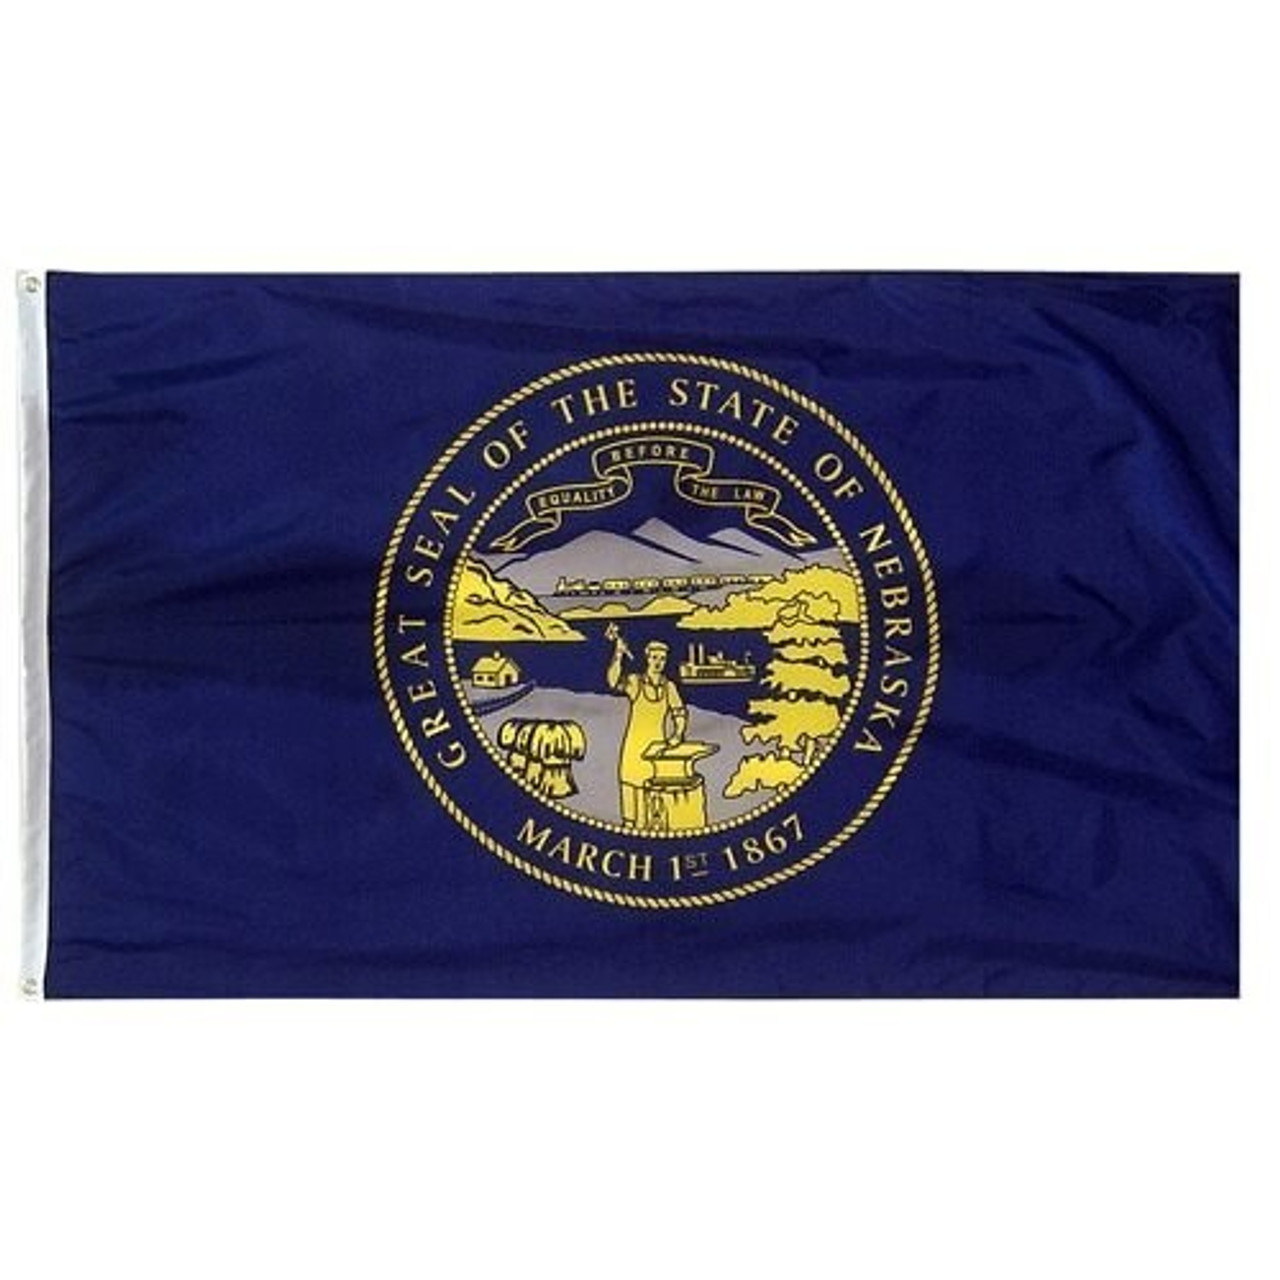 Navy blue Nebraska Flag with gold and silver state seal in the middle.